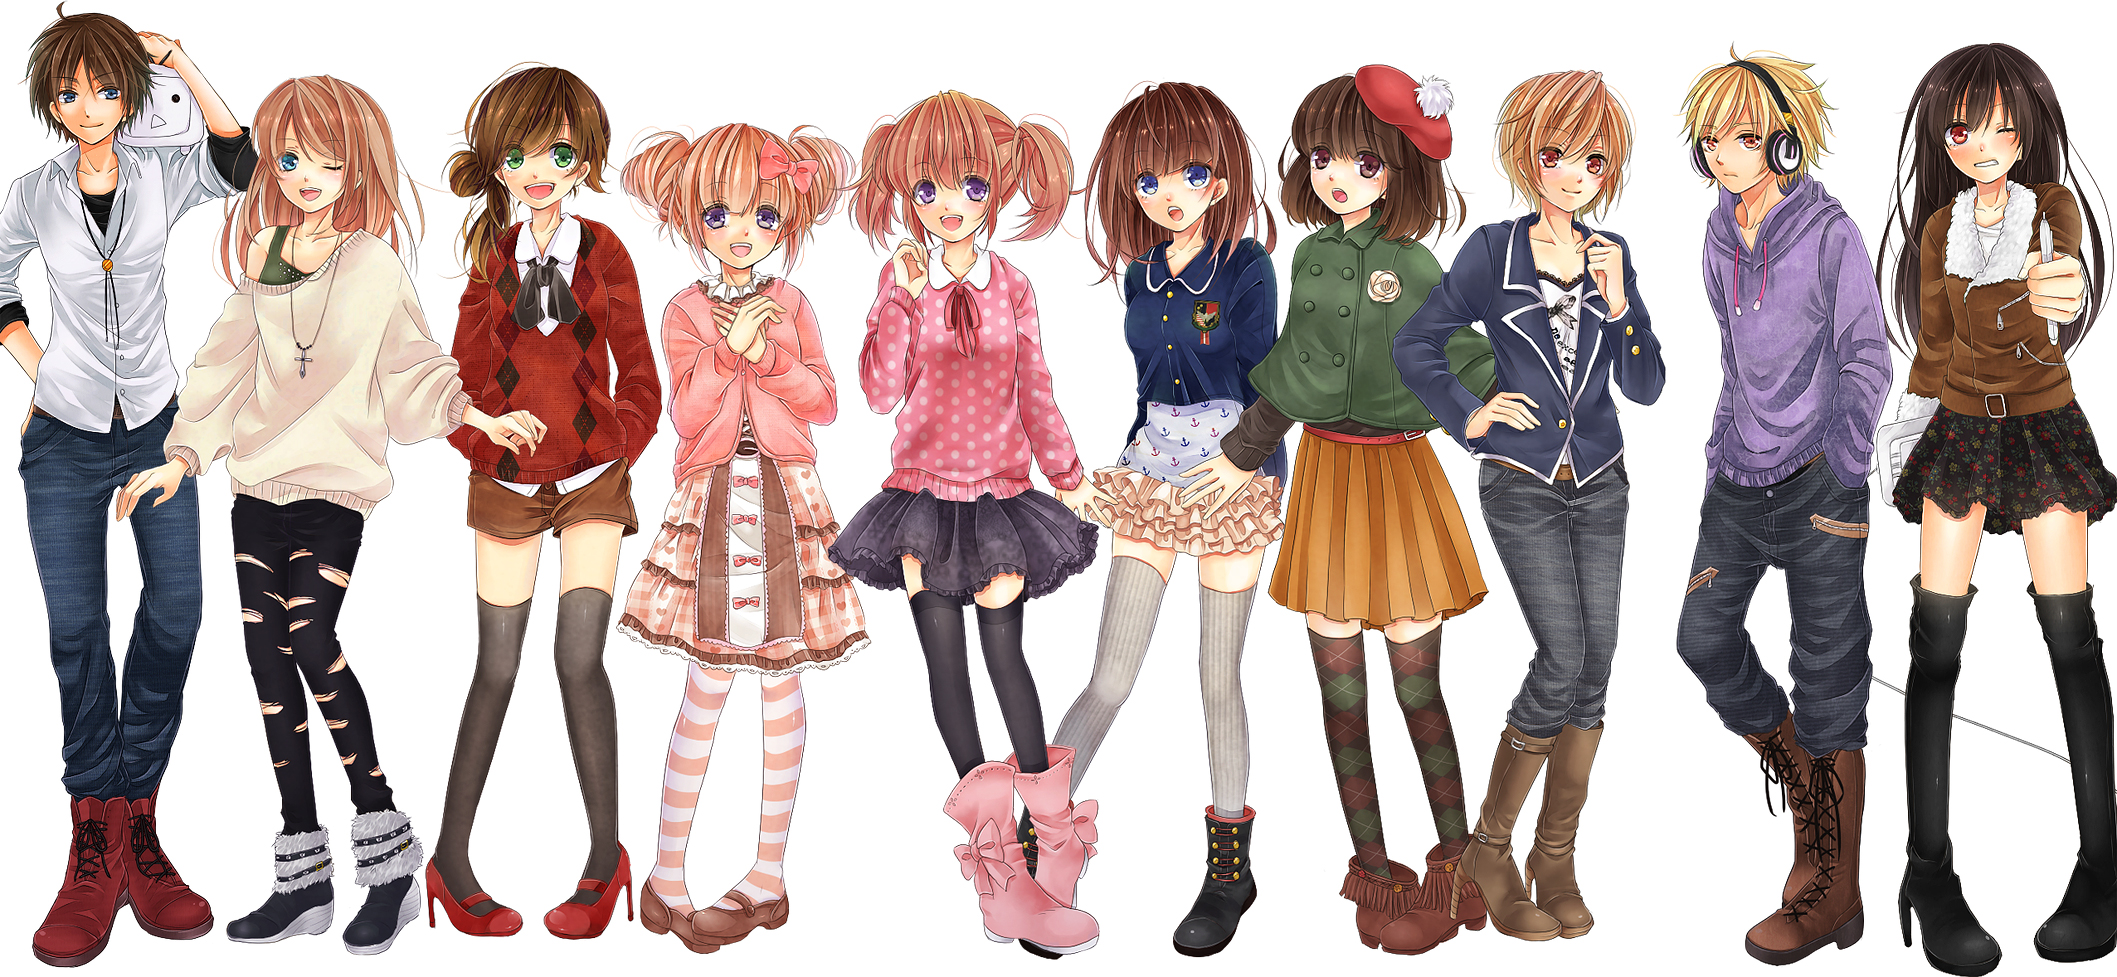 Girl Style For Anime